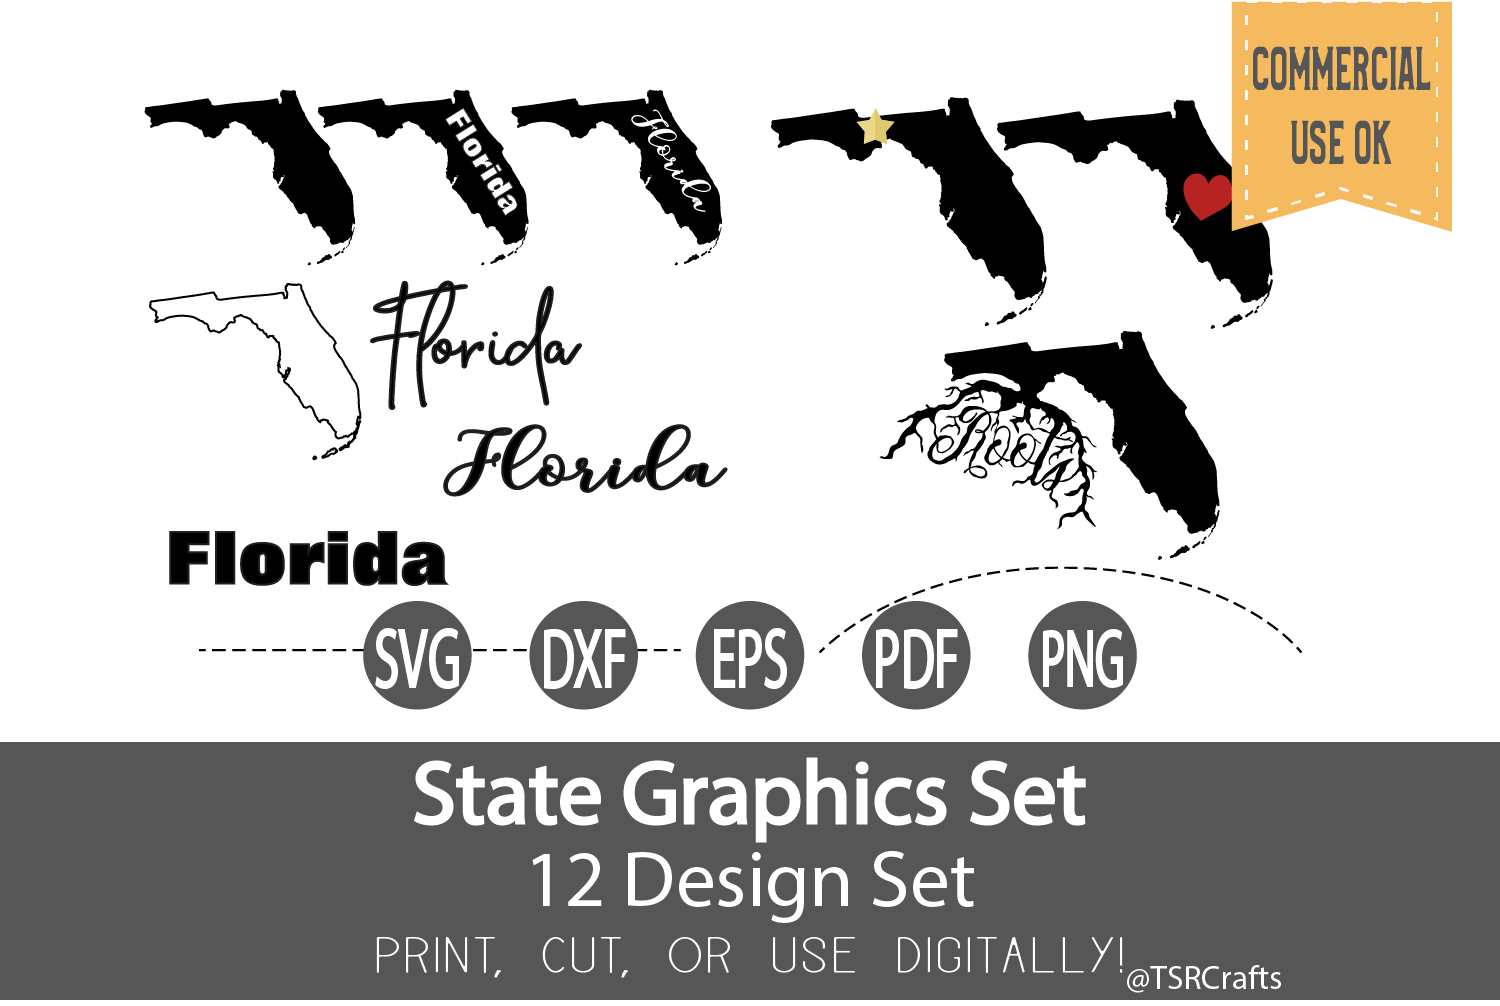 Florida State Graphics Set - Clip Art and Digital Cut fi example image 1